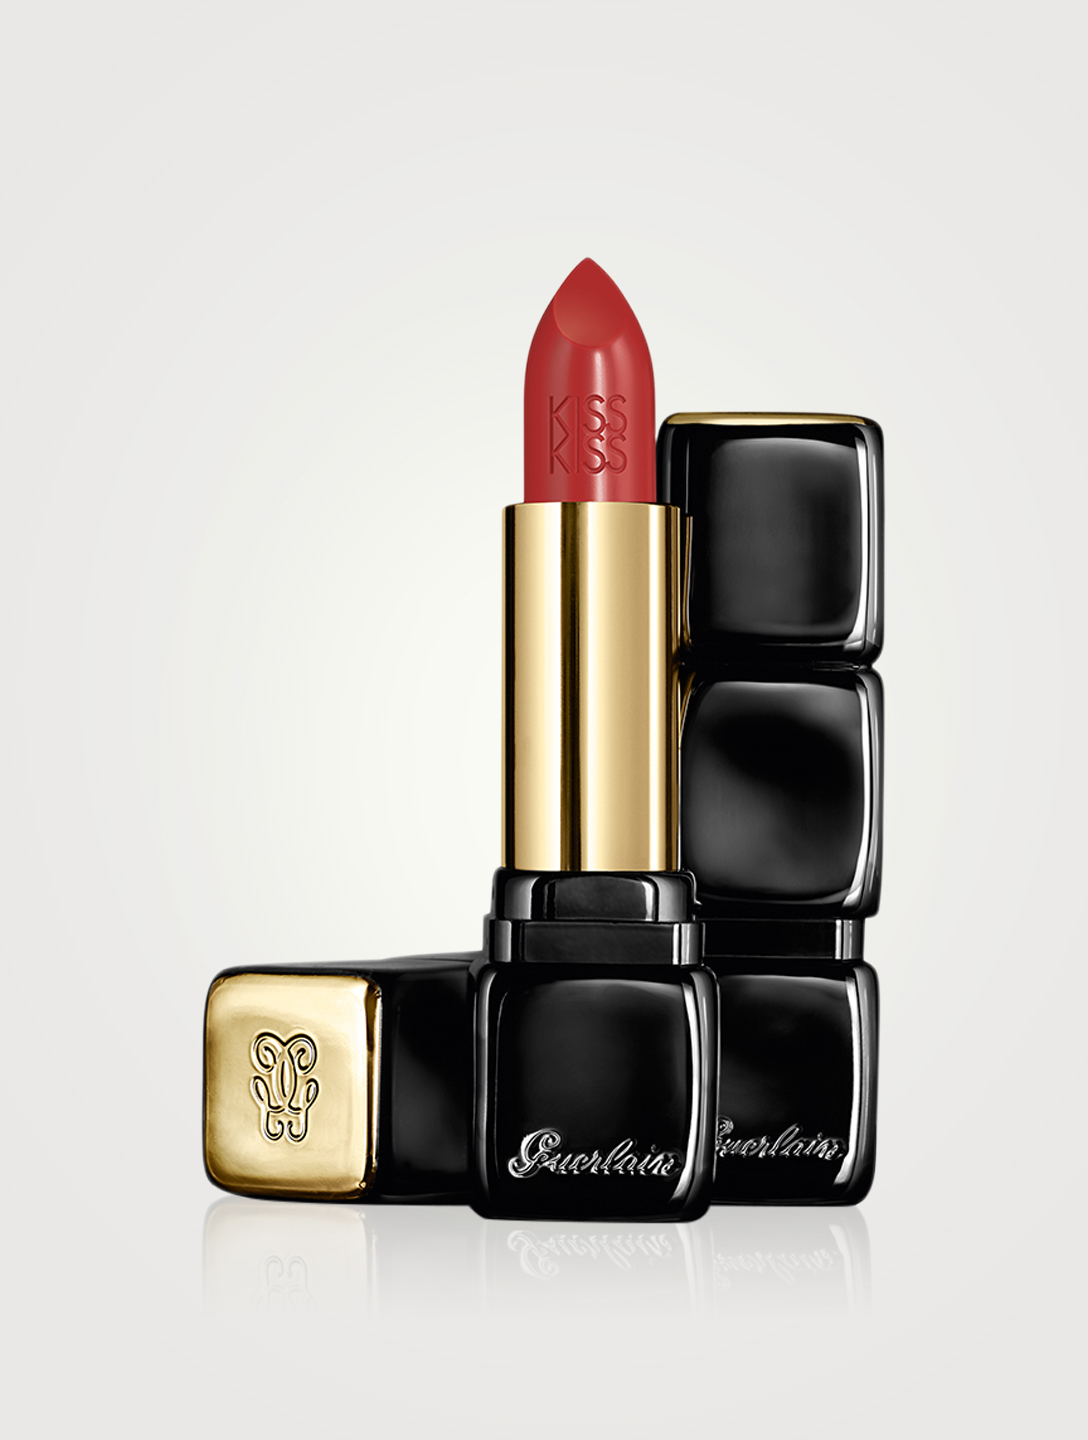 GUERLAIN KissKiss Shaping Cream Lipstick Beauty Red